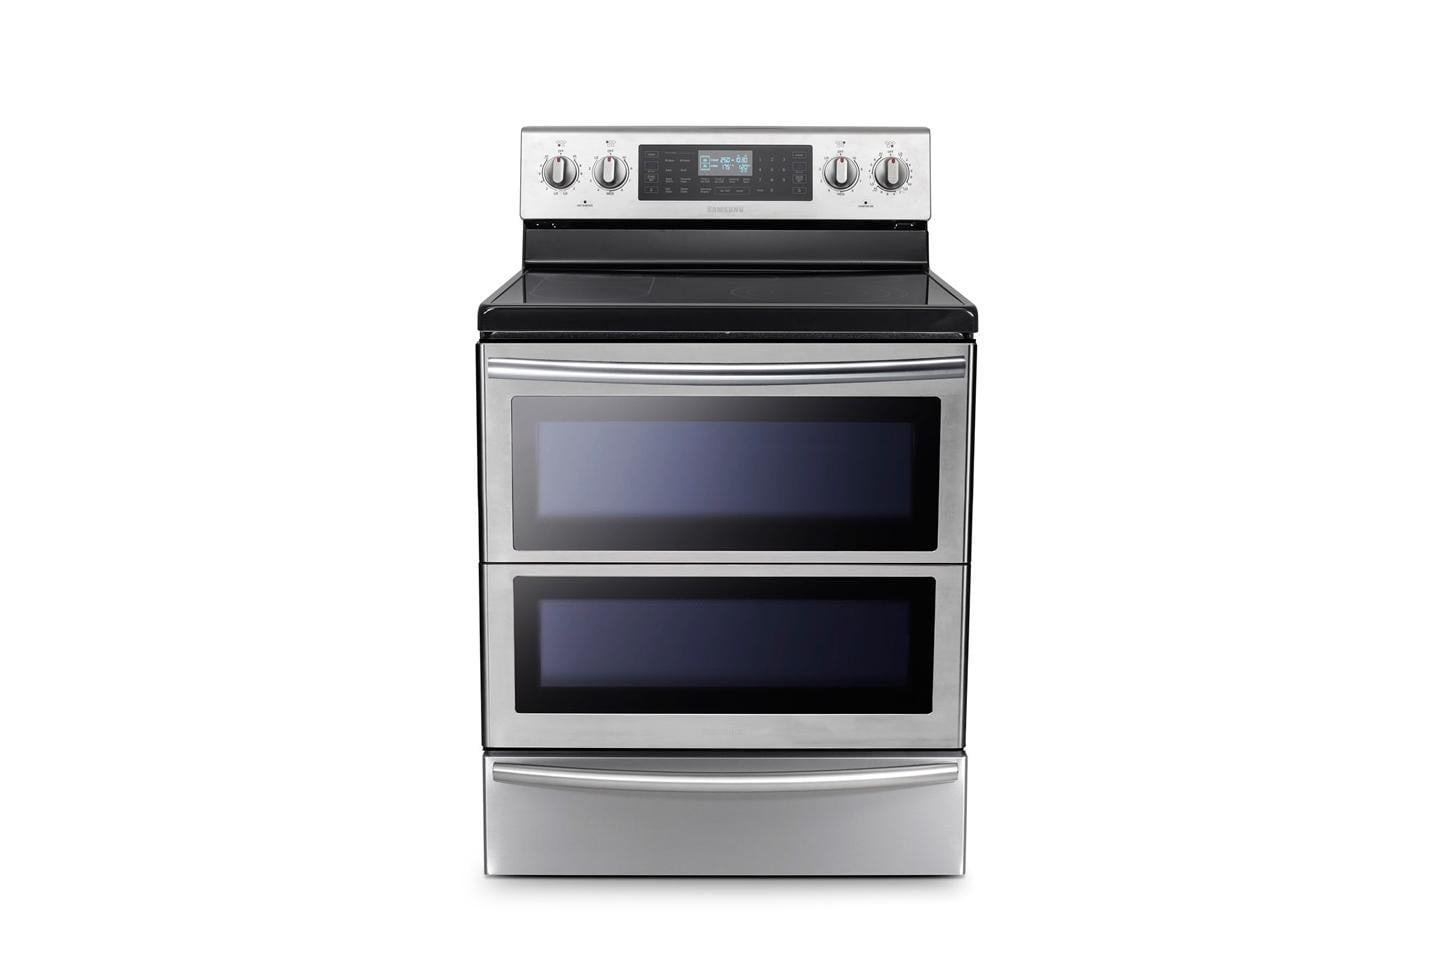 samsungs home appliances at ces 2015 samsung 30  freestanding flex duo oven range with double door image 1